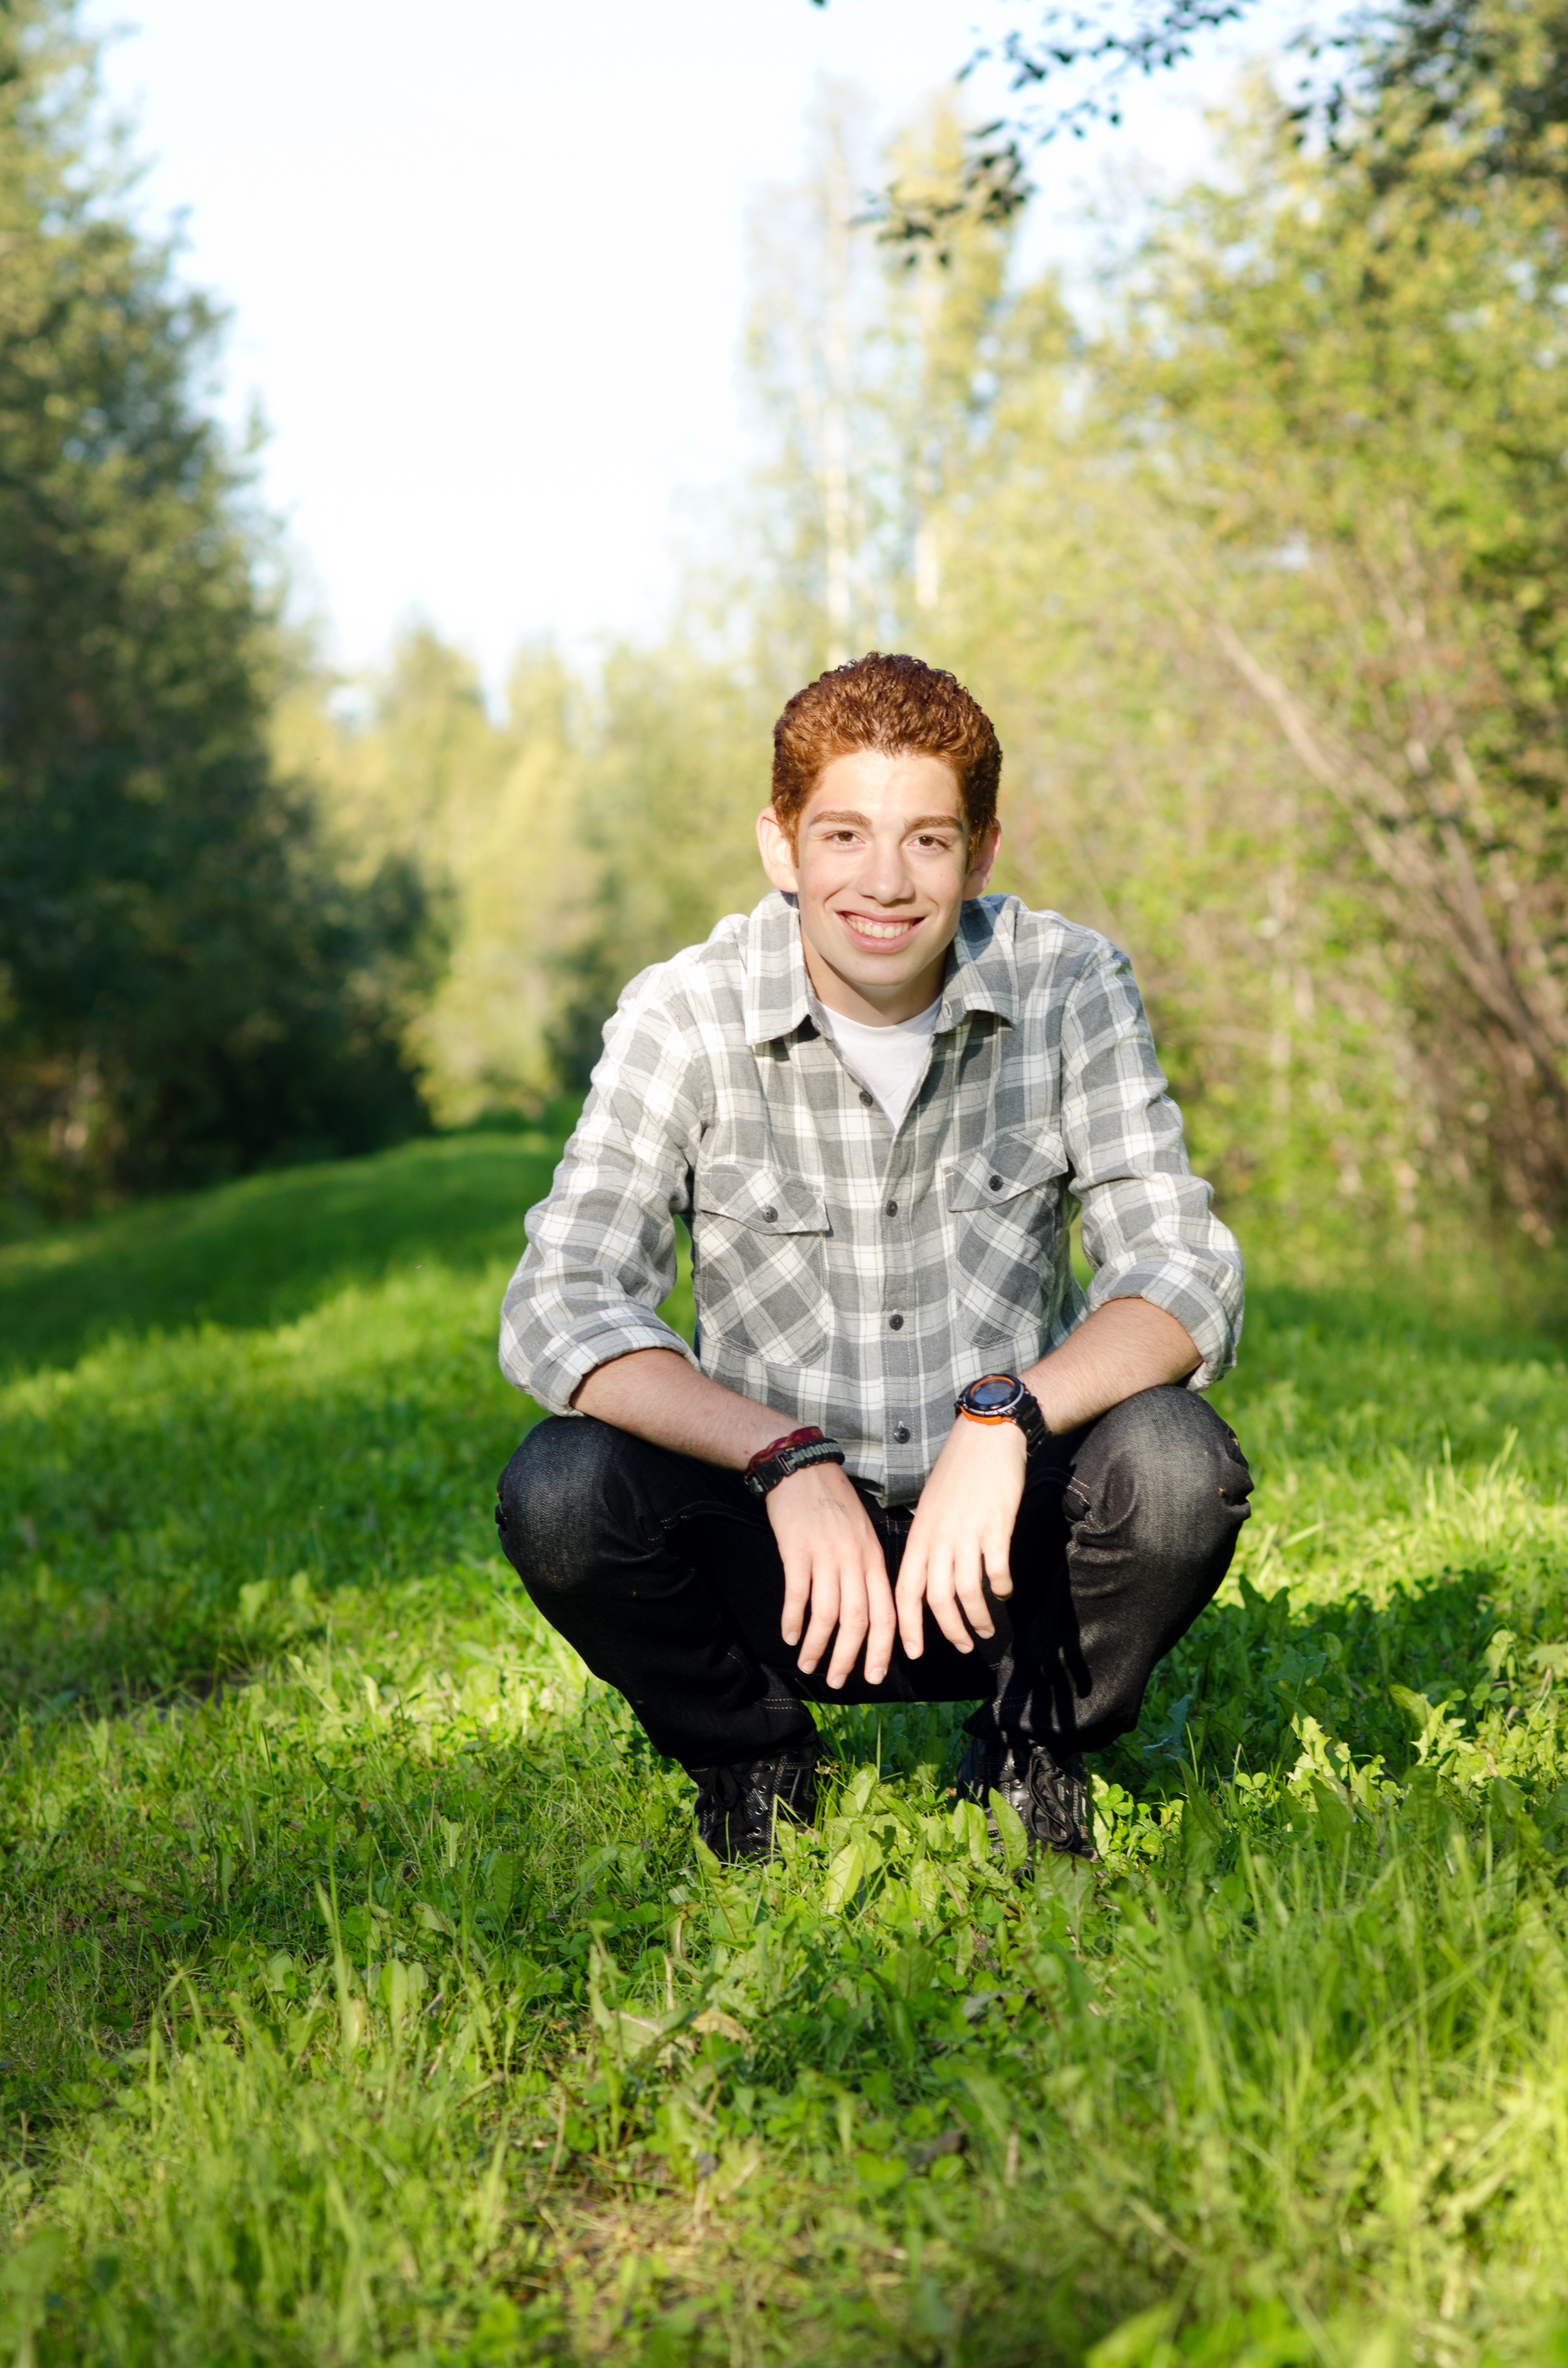 fairbanks senior photos photographer in alaska